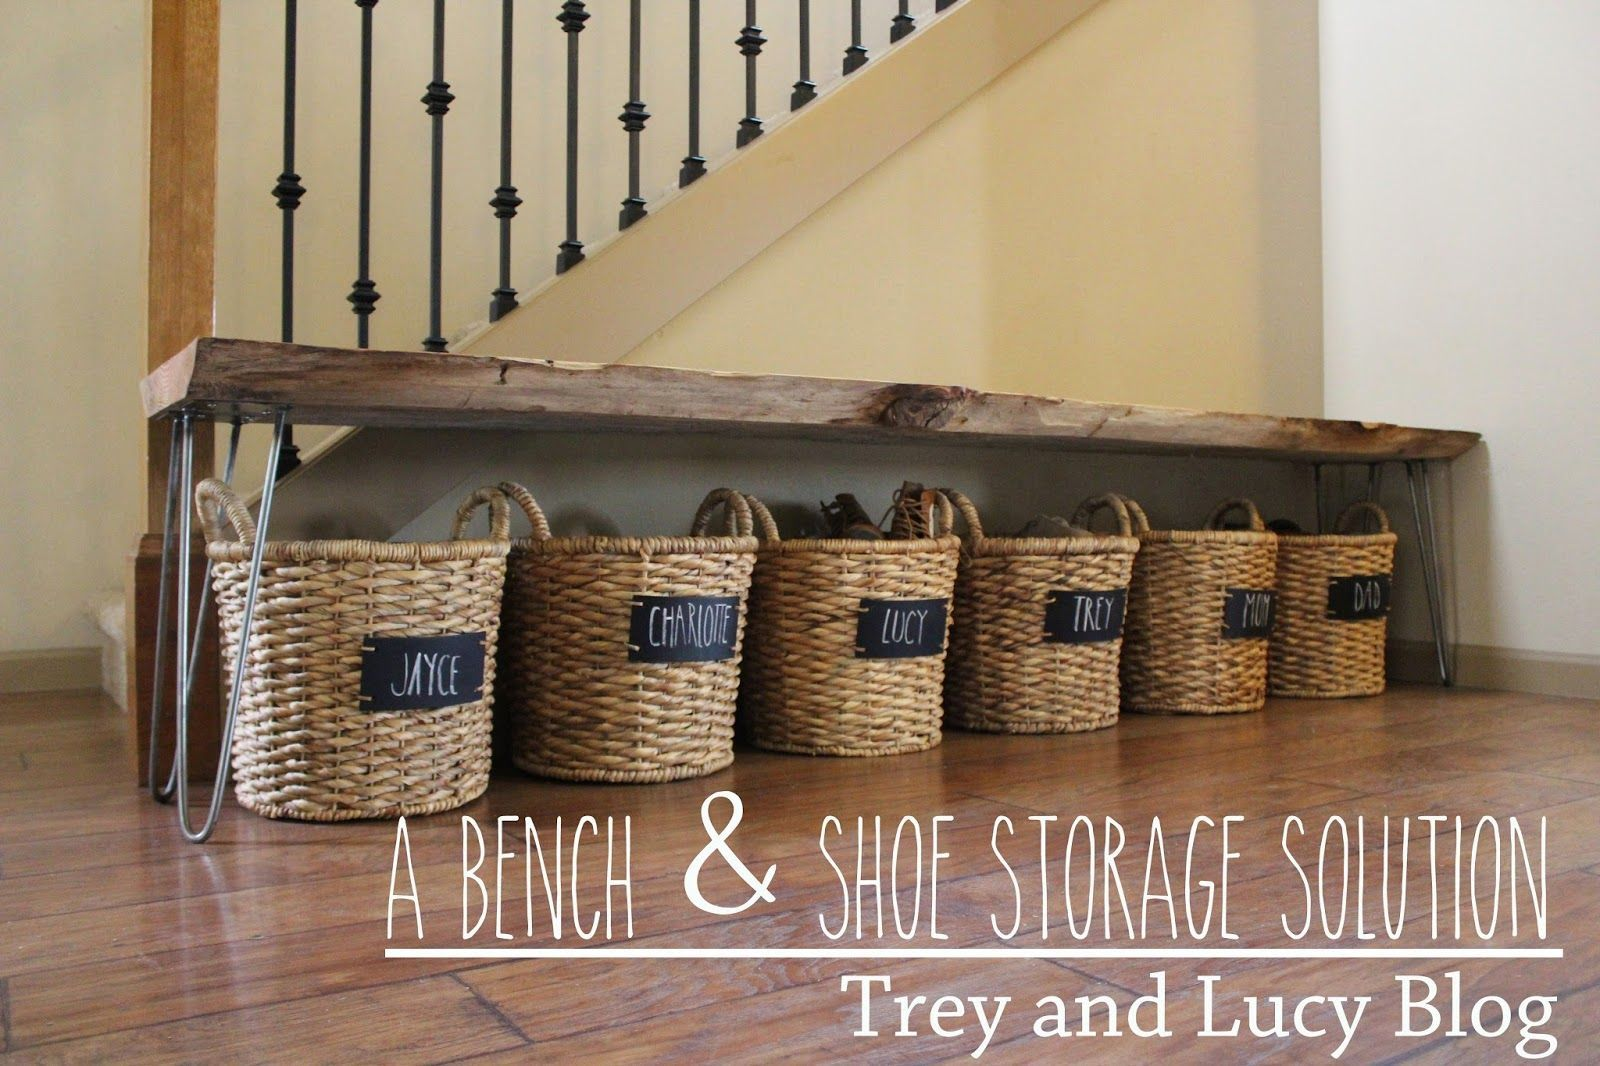 #664931 Bench & Shoe Storage DIY Home And DIY Pinterest Bench Storage  with 1600x1066 px of Most Effective Corner Storage Bench With Basket 10661600 wallpaper @ avoidforclosure.info